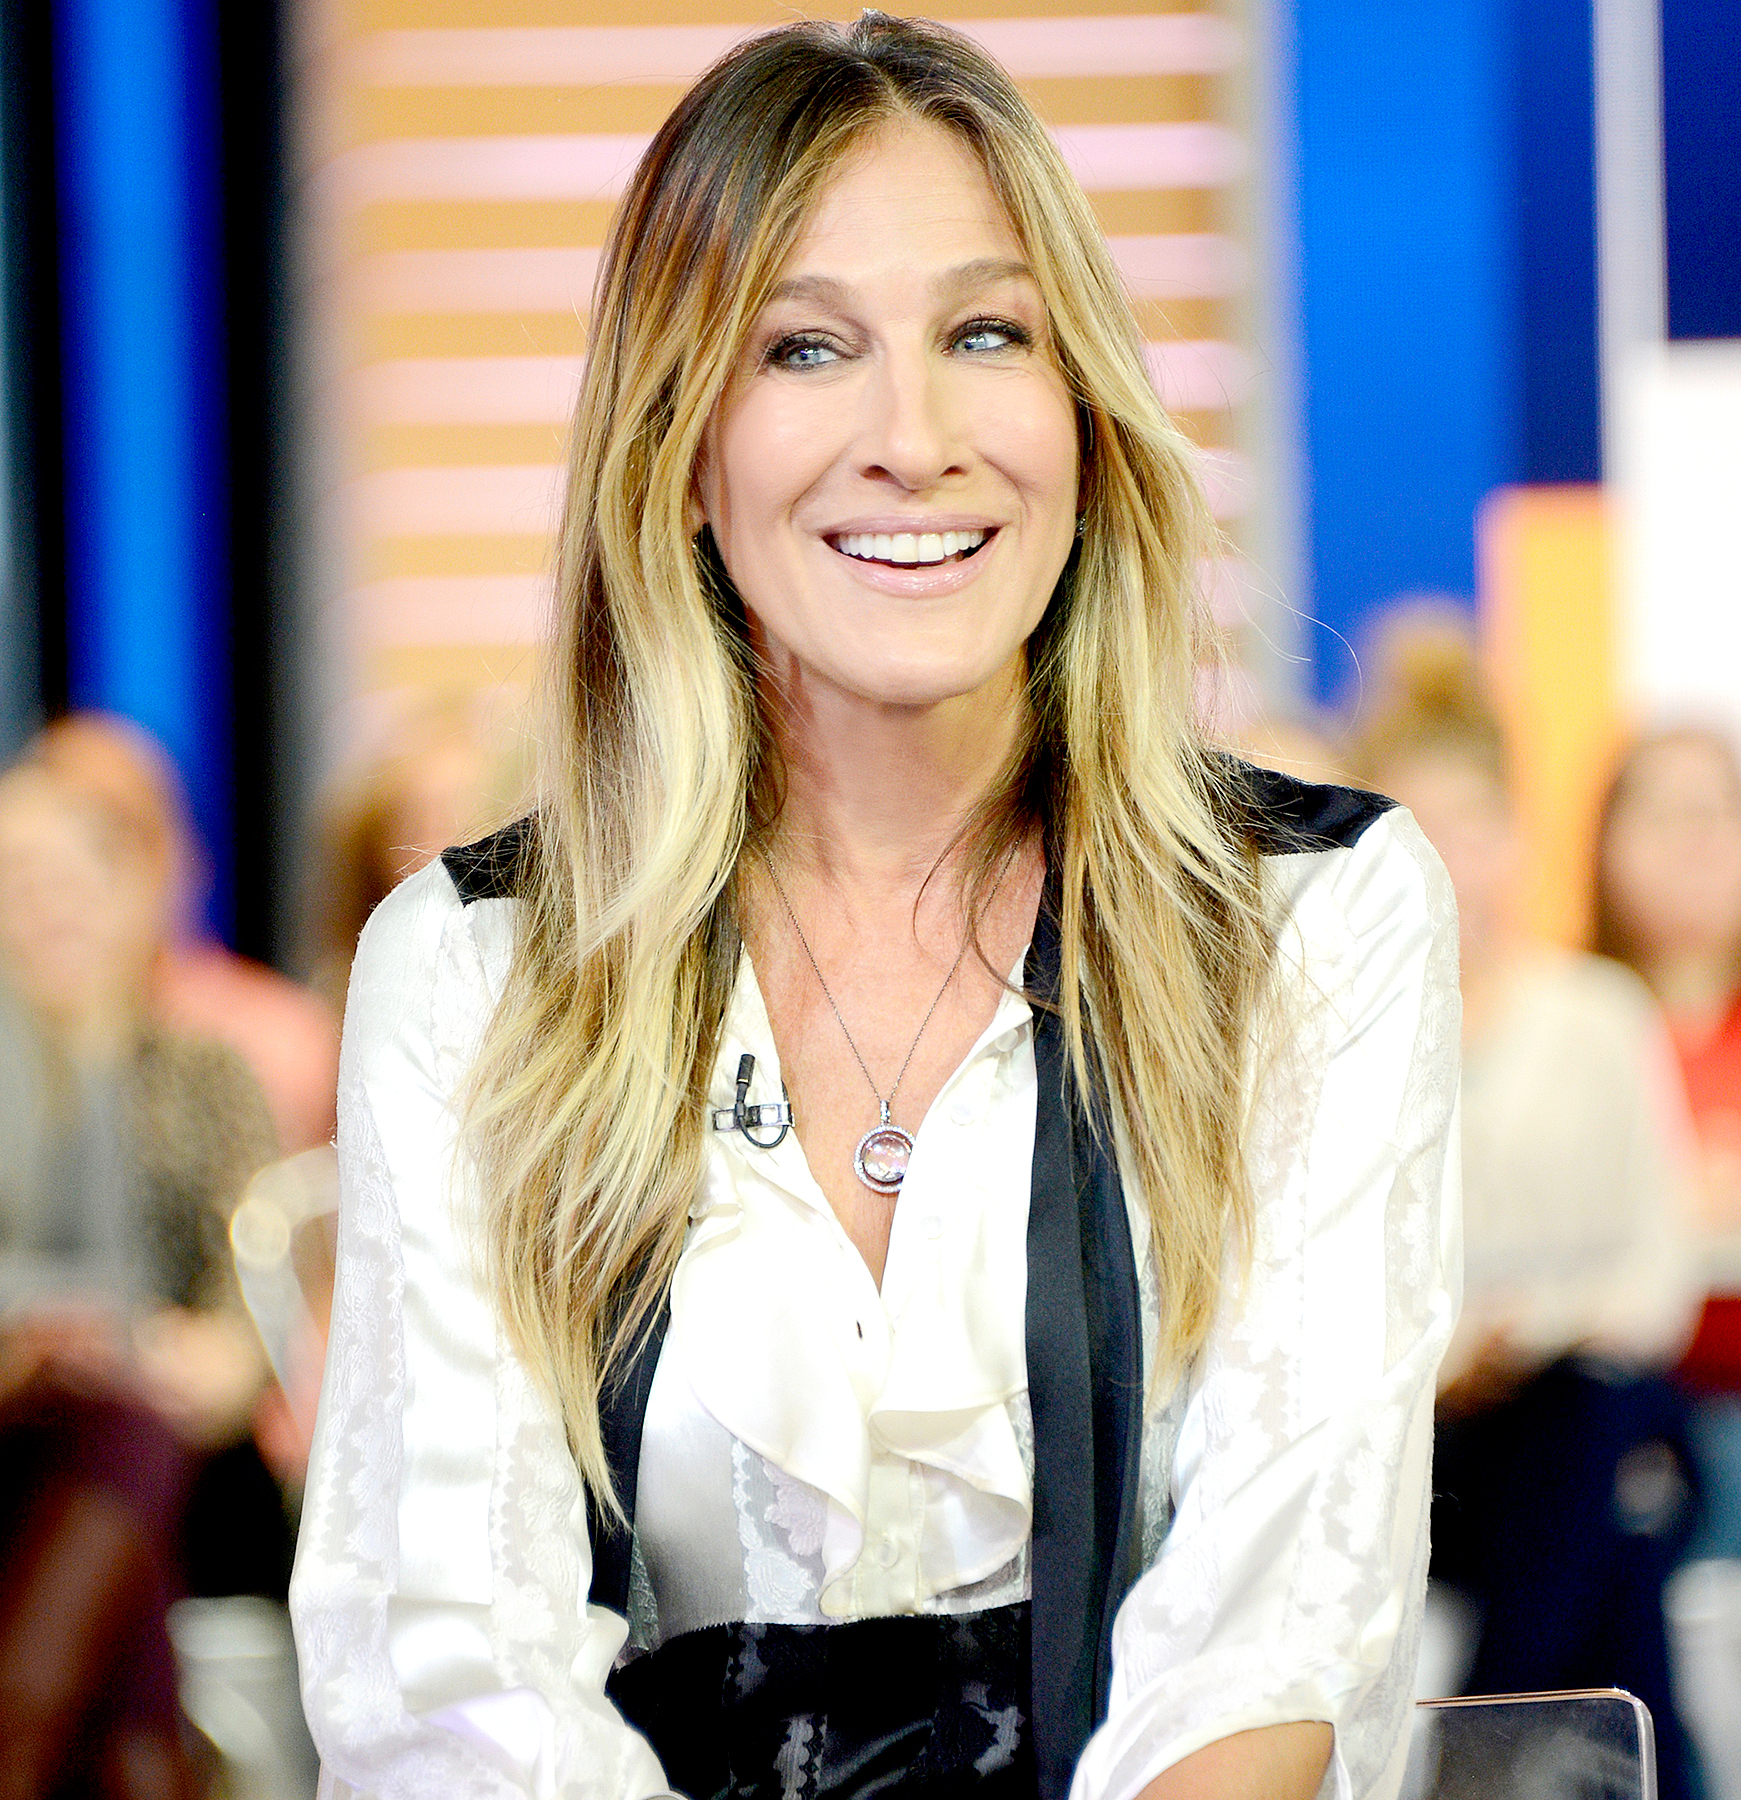 Sarah Jessica Parker attends a photocall/meets fans as she launches her new fragrance 'Stash' at Superdrug, Westfield White City on September 14, 2016 in London, England.